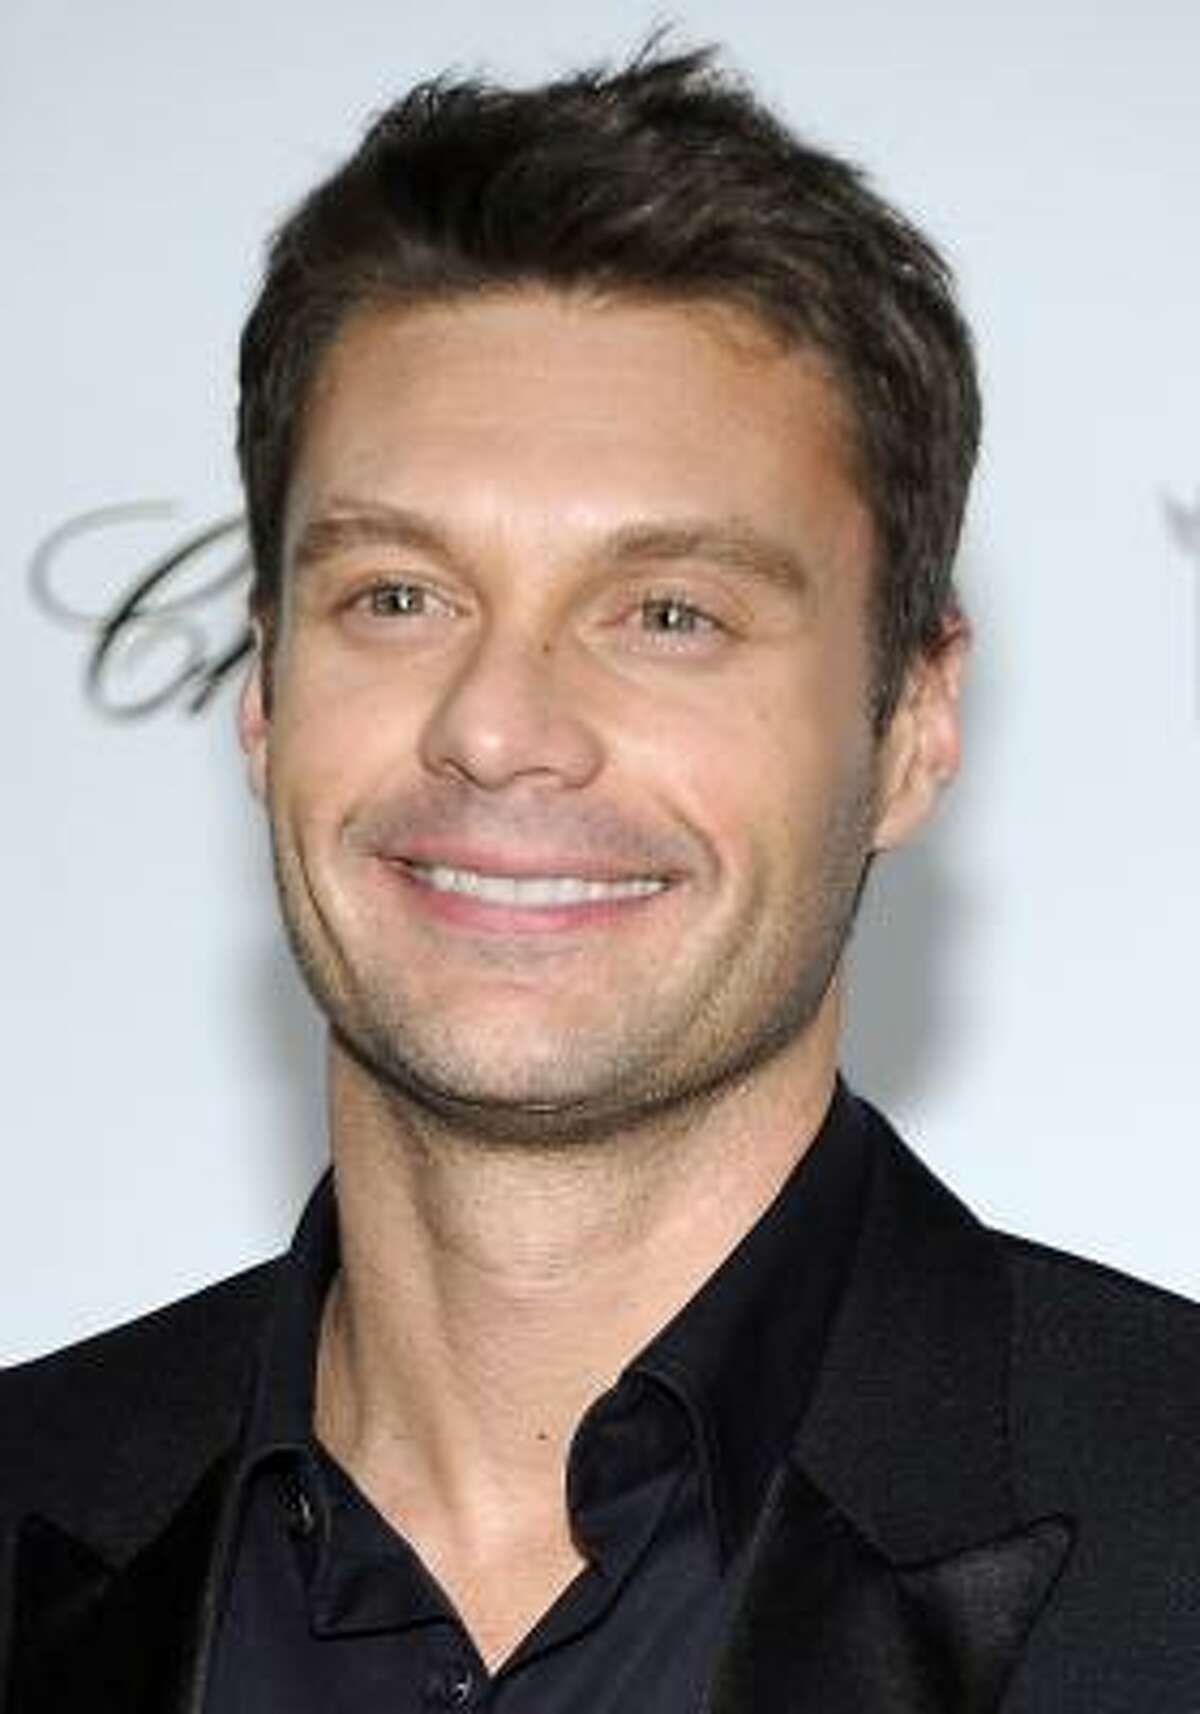 3. Ryan Seacrest (38 million dollars). Read more about how they made their money here.